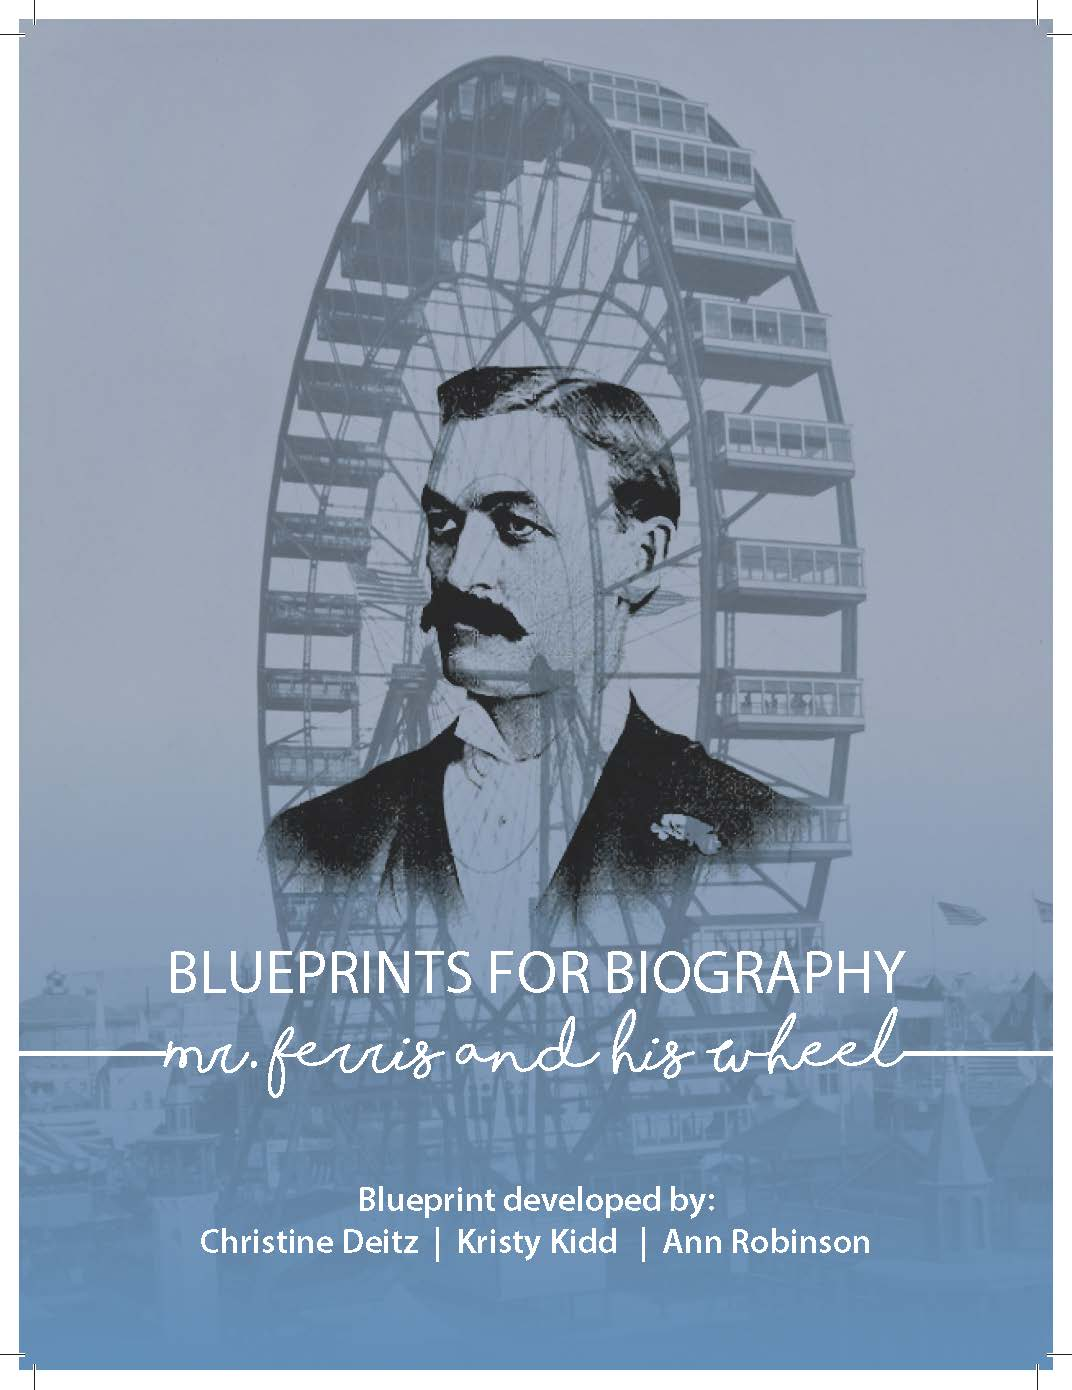 Blueprints for Biography